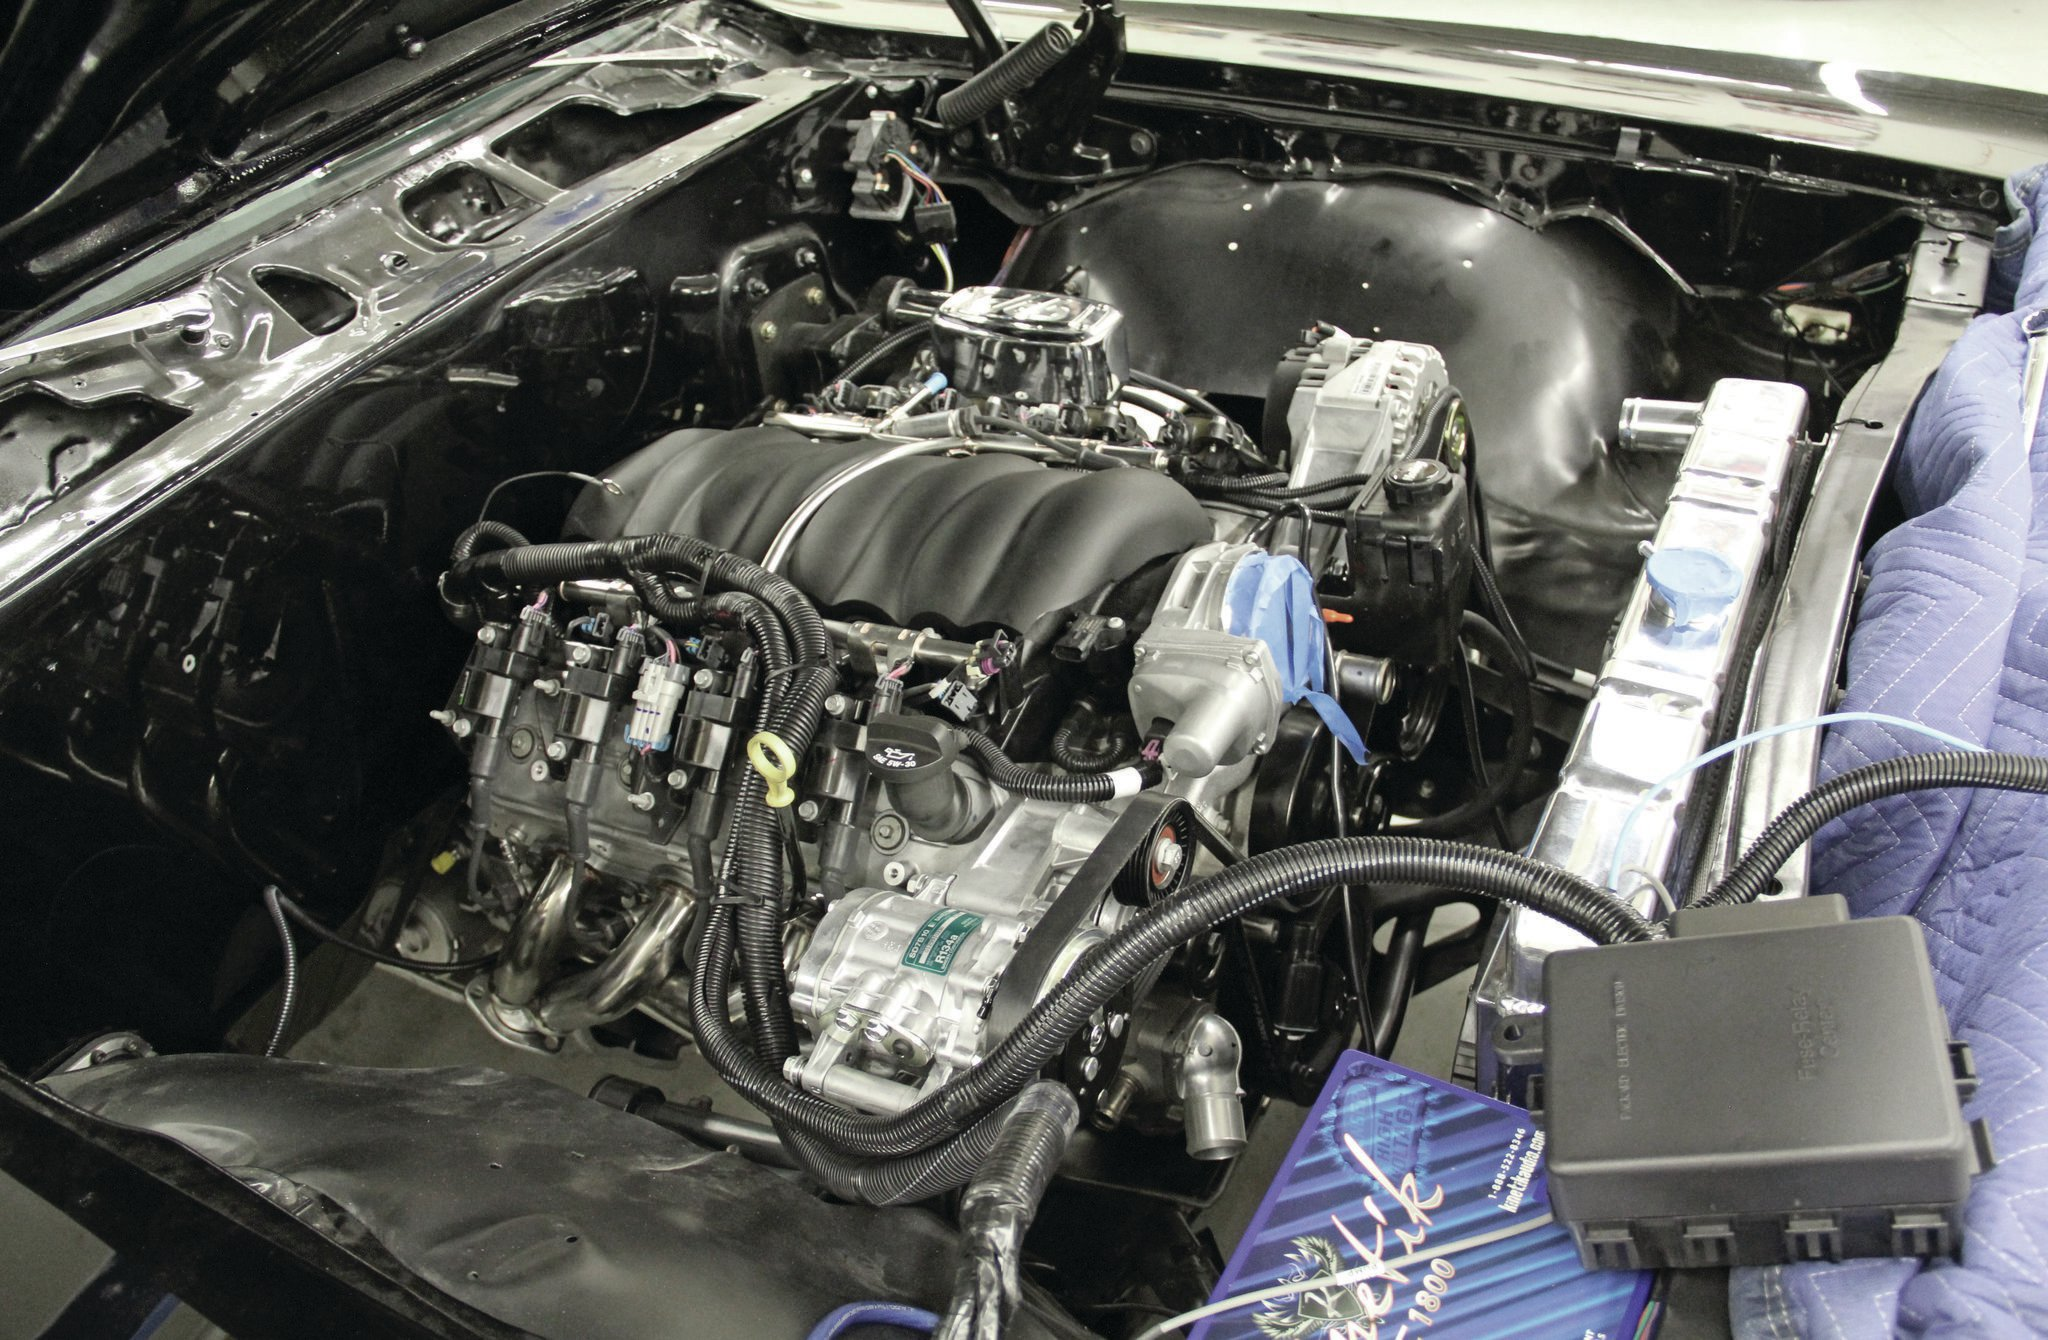 Chevy LS3 Install Part 2 - Put the Super in Super Sport